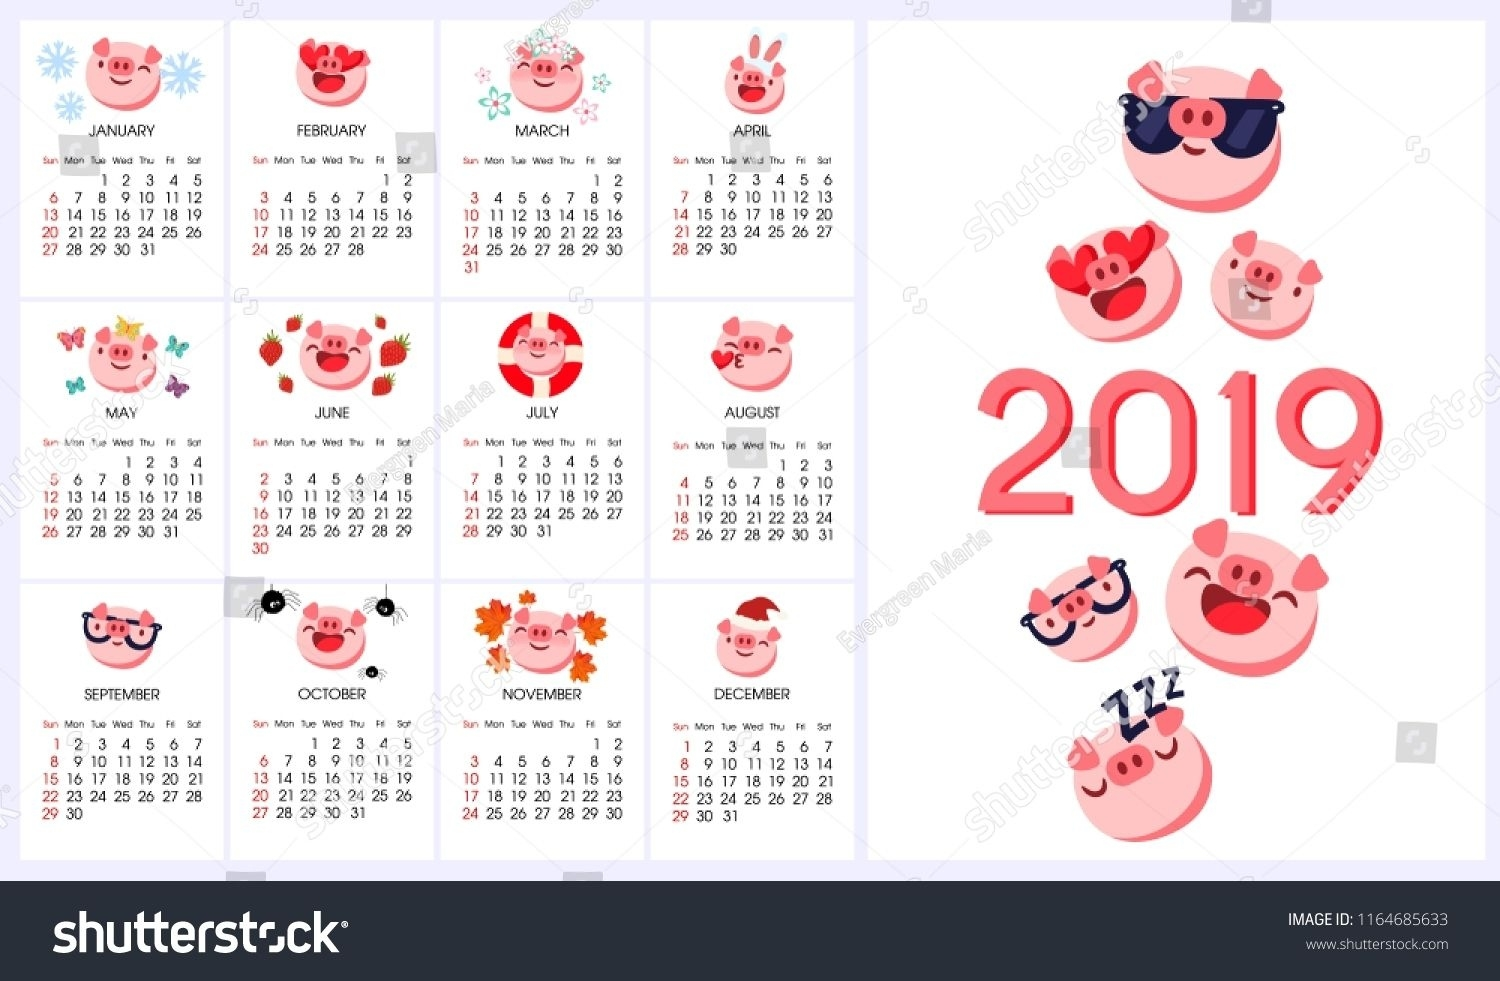 Chinese Calendar With Zodiac Signs | Happy Chinese New Year Chinese Calendar With Zodiac Signs